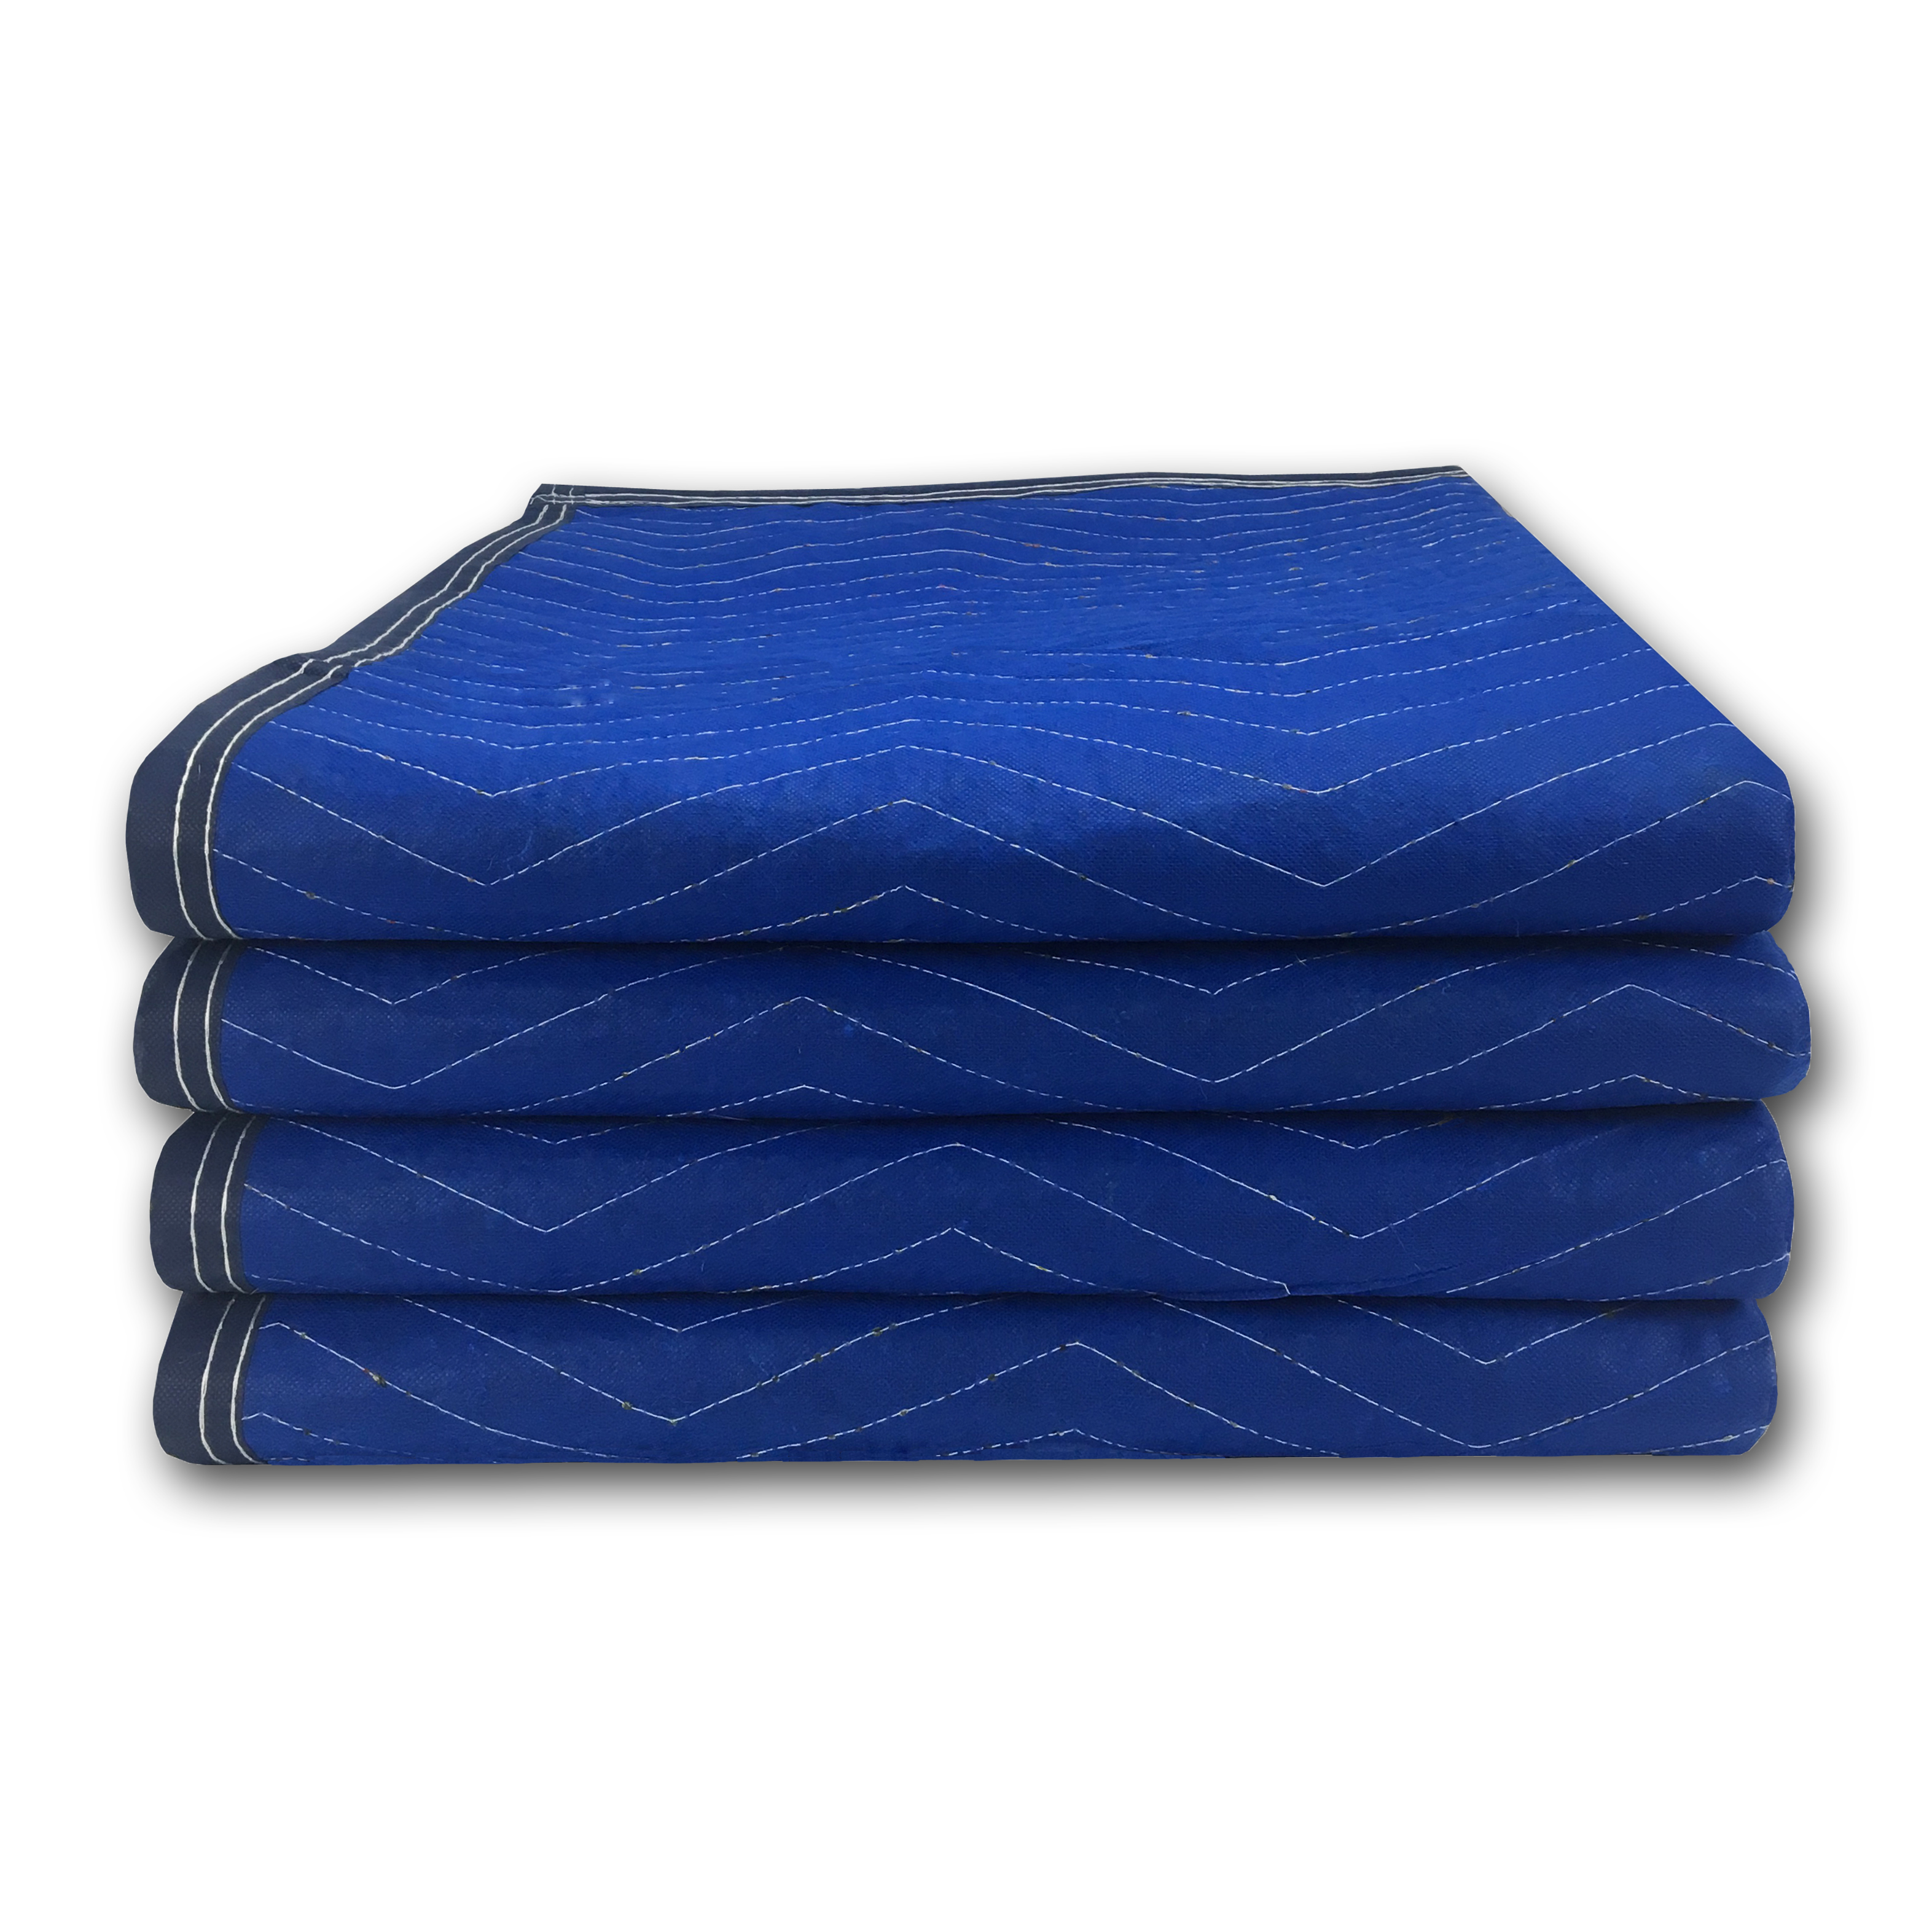 Uboxes Economy Moving Blankets, 72 x 80 in, 3.58lbs each, 4 Pack